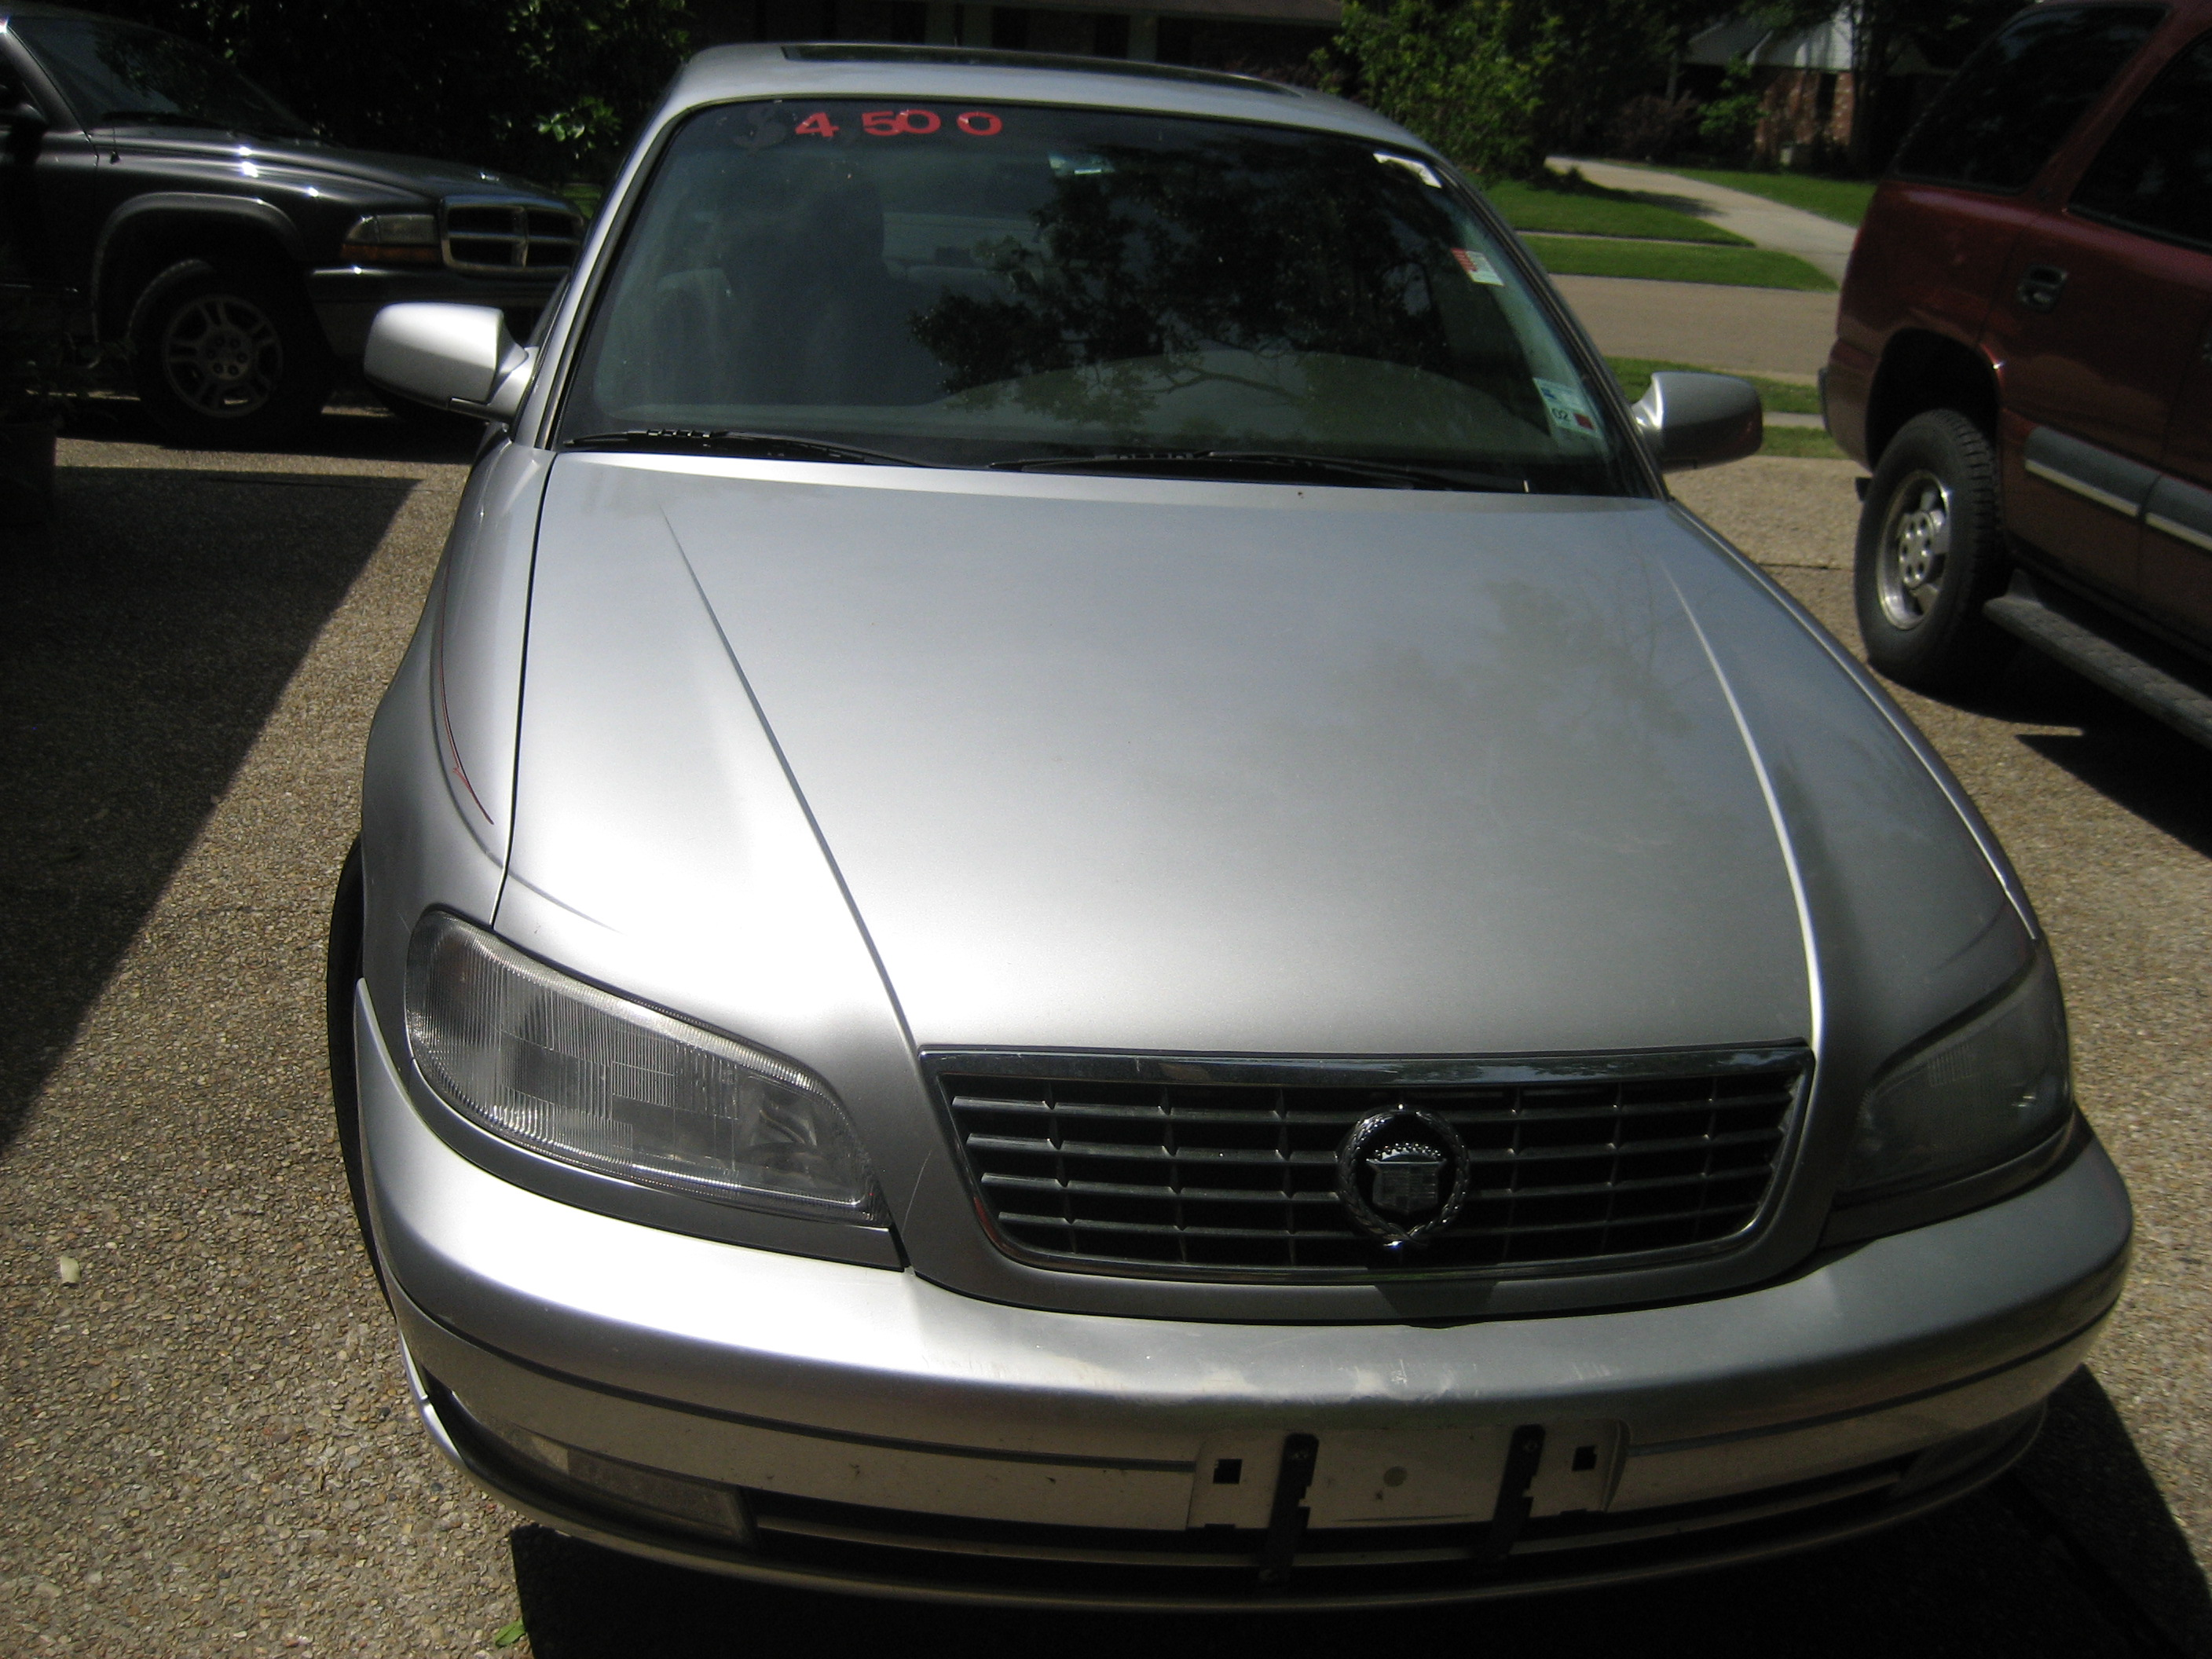 SOLD2000 Silver Cadillac Catera, low mileage, $4500 Sunday, Apr 20